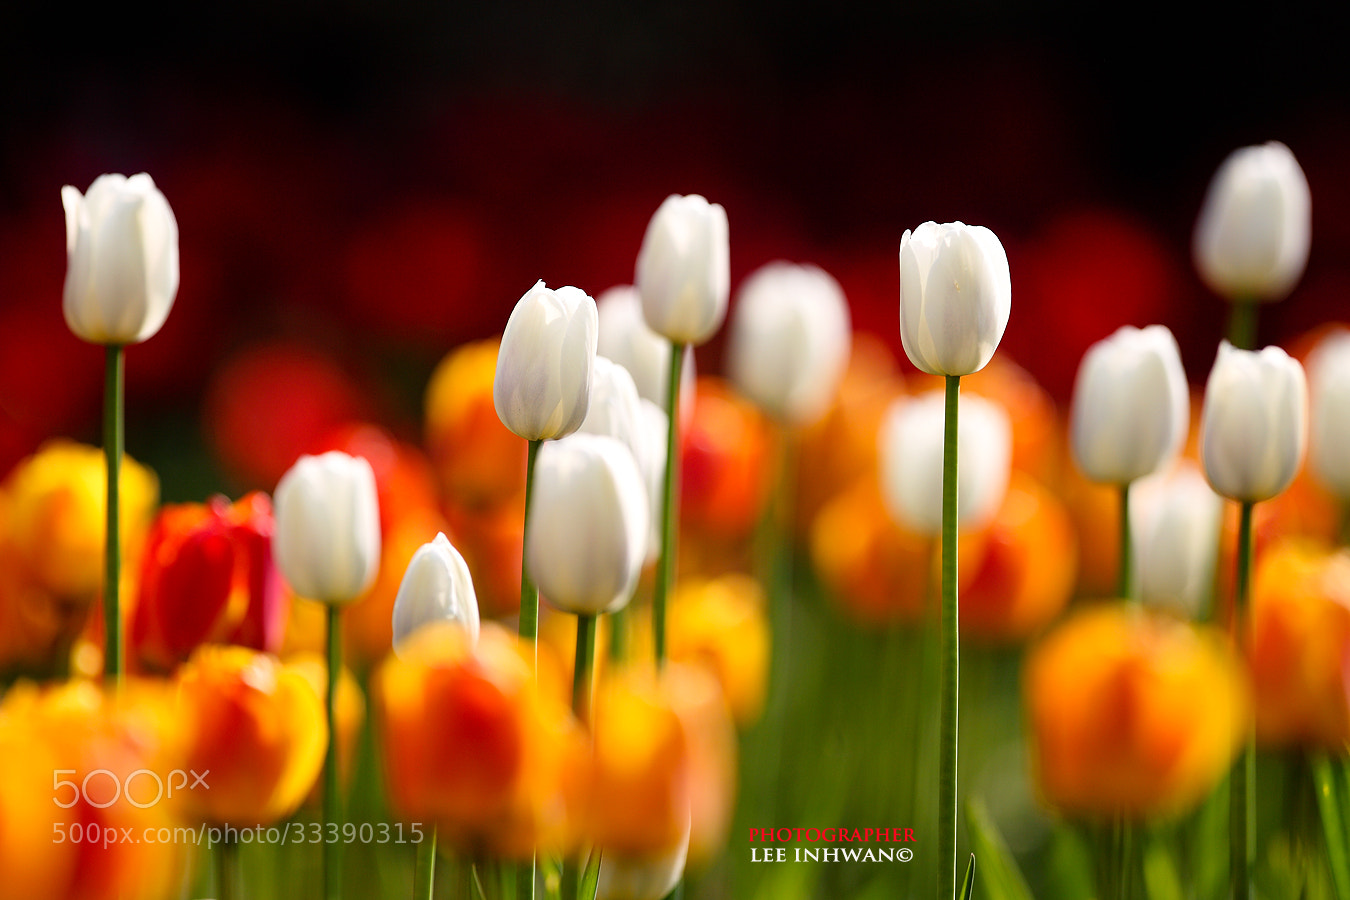 Photograph Harmony of color by LEE INHWAN on 500px